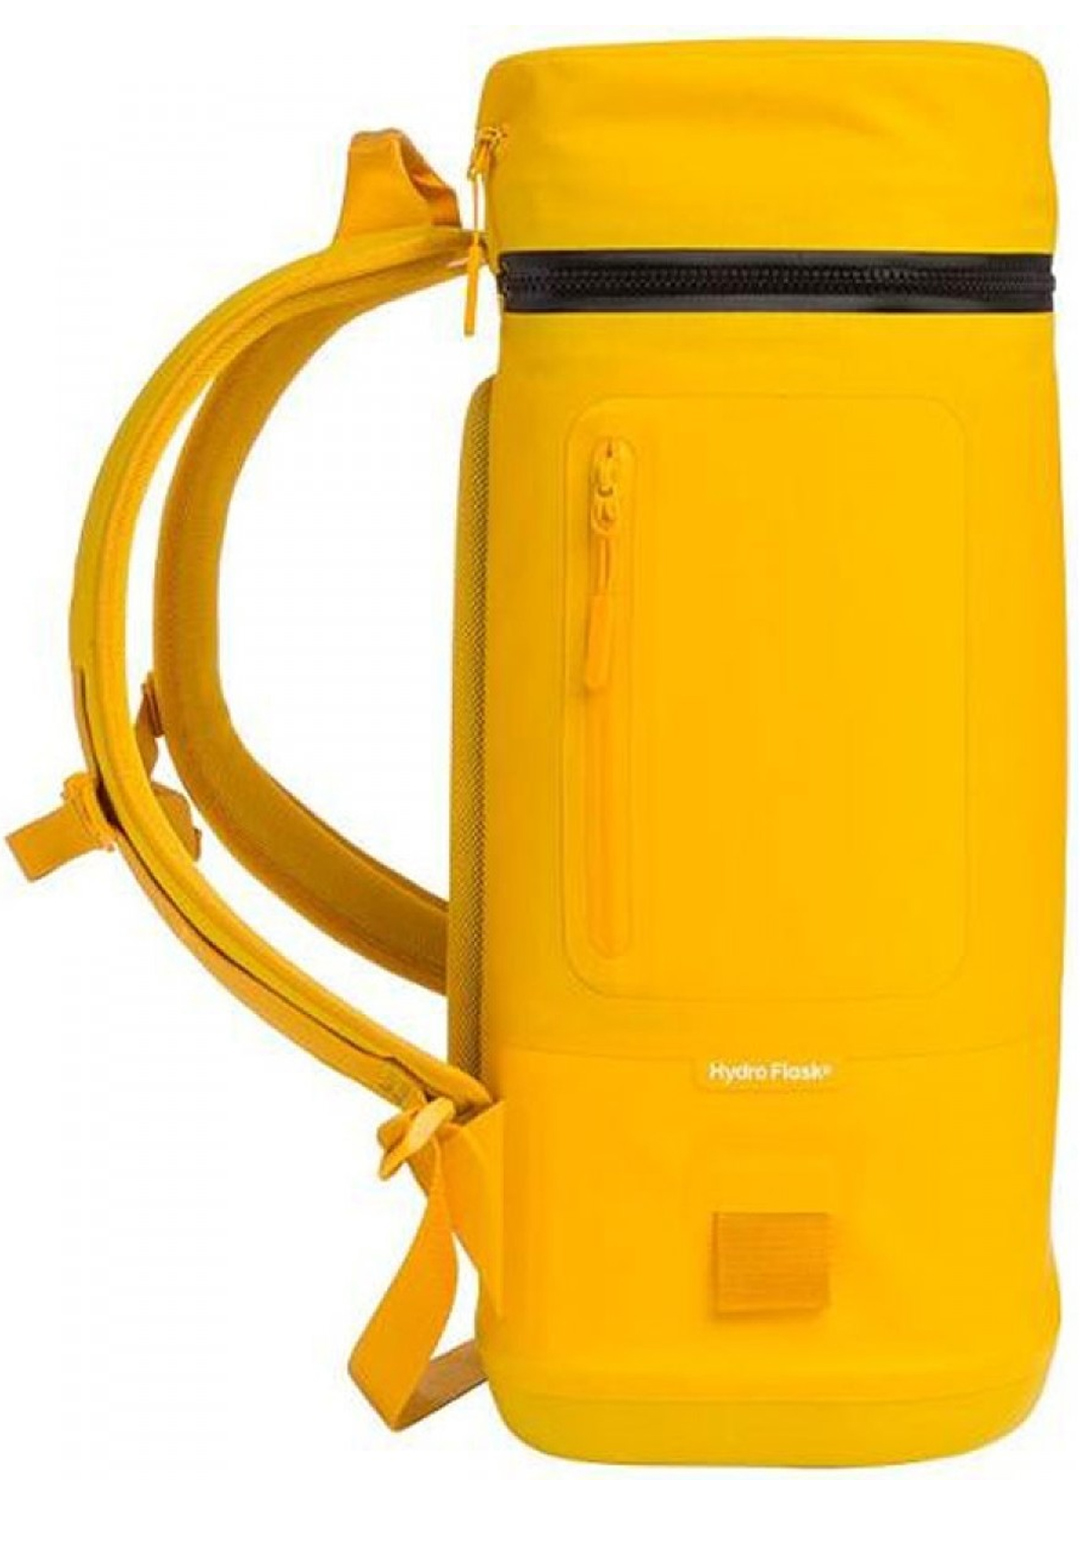 Hydro Flask Unbound Cooler Backpack 22L Goldenrod Yellow side